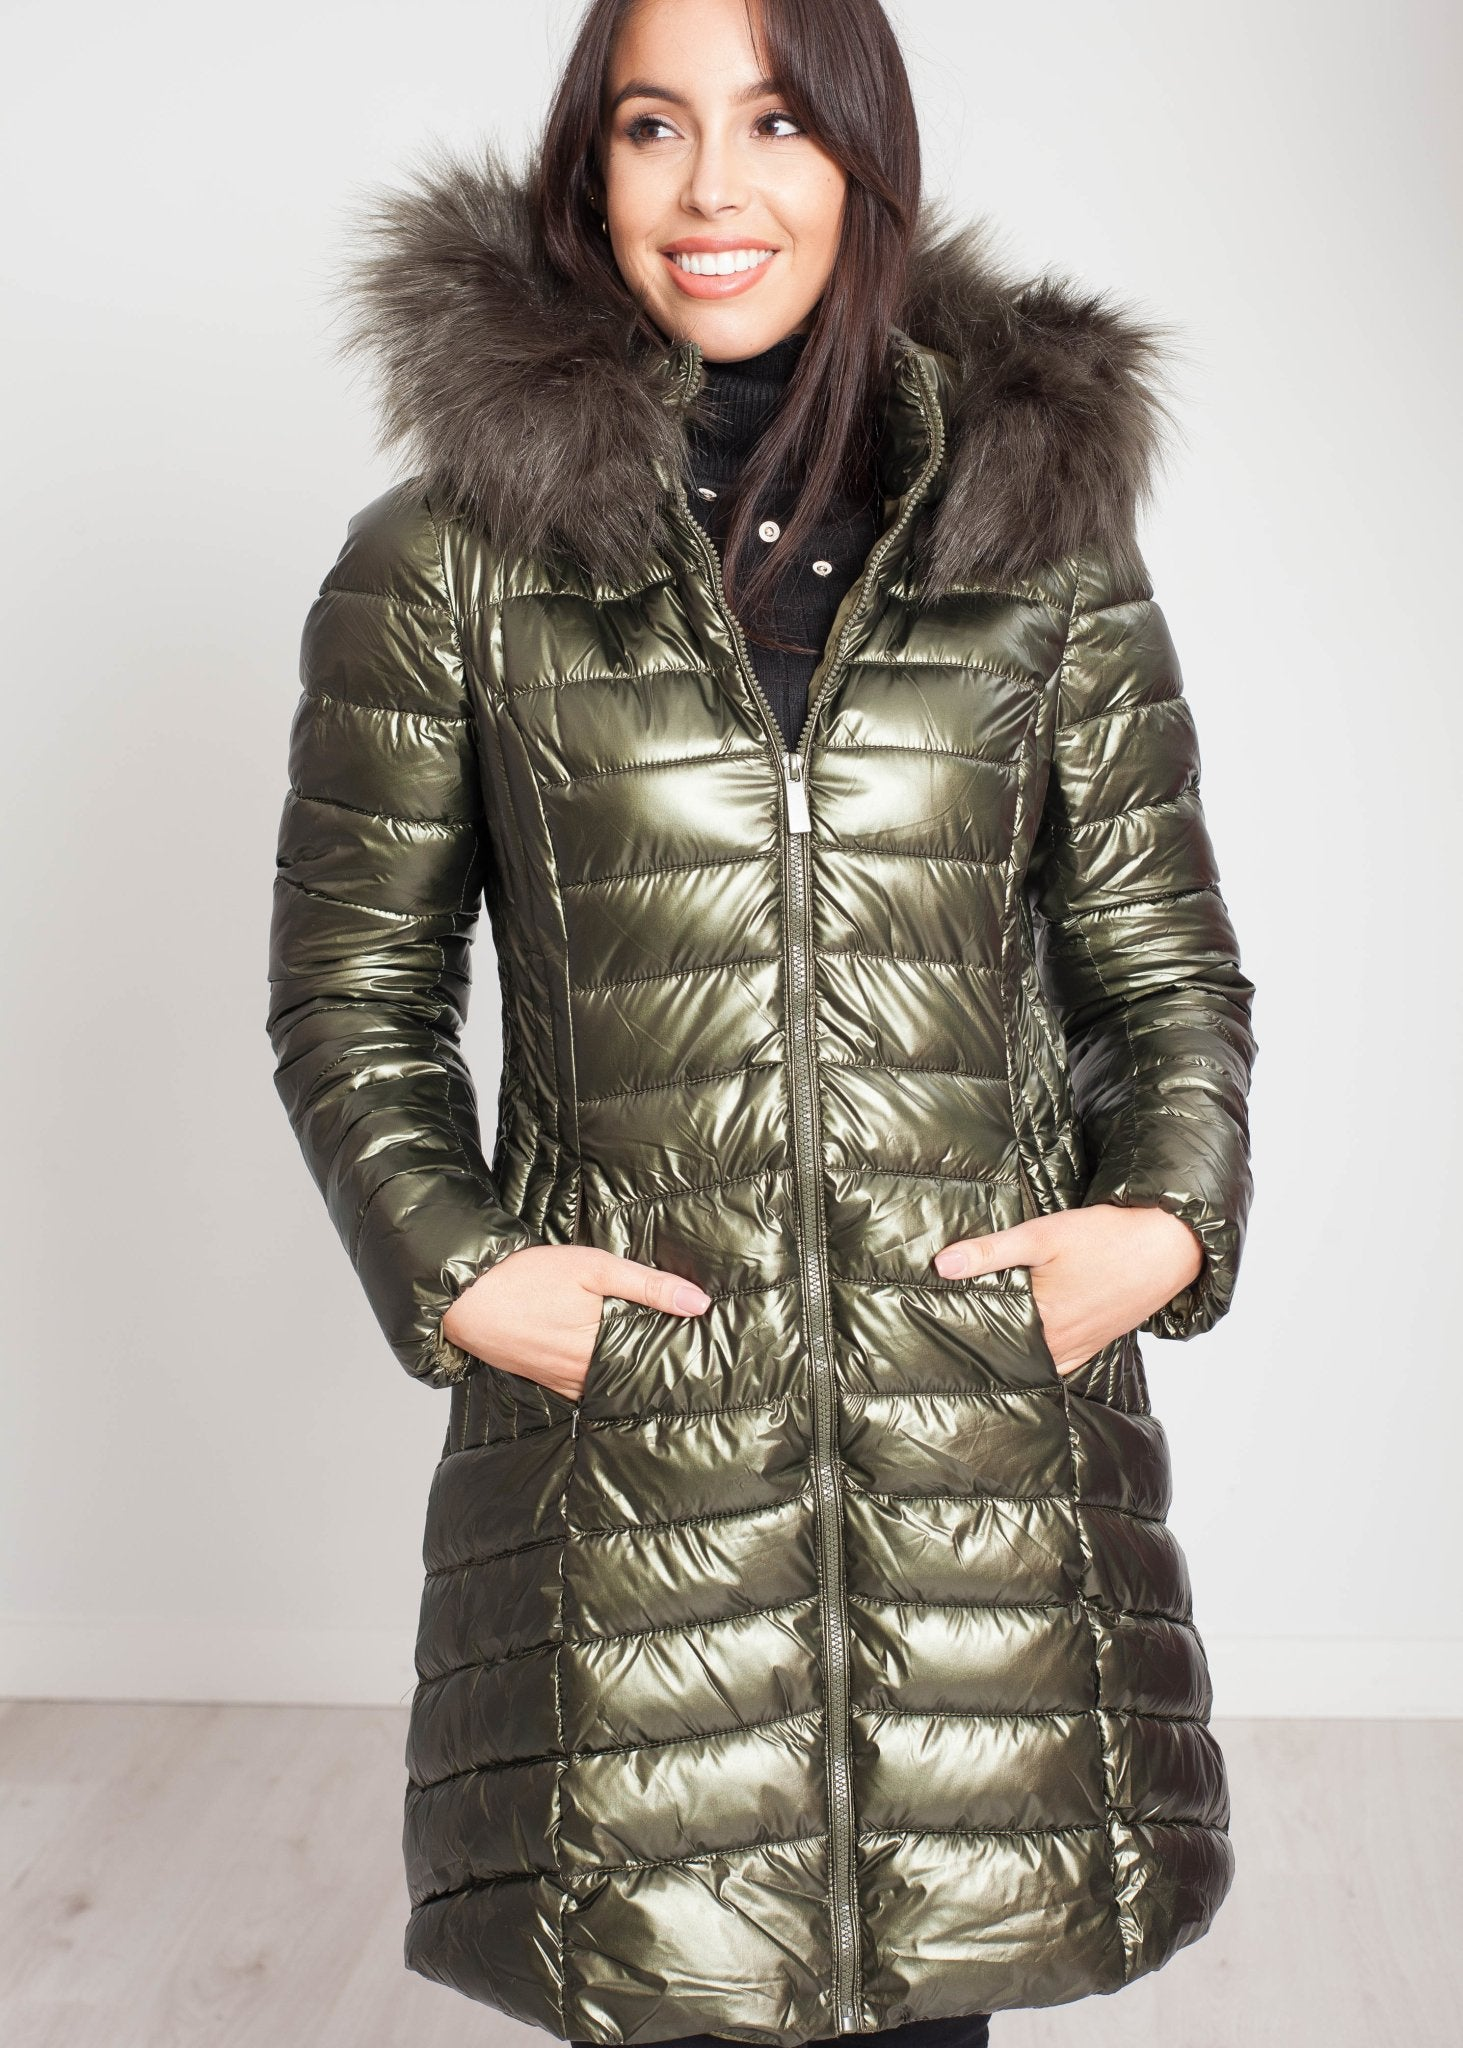 Jayme Quilted Coat In Khaki - The Walk in Wardrobe